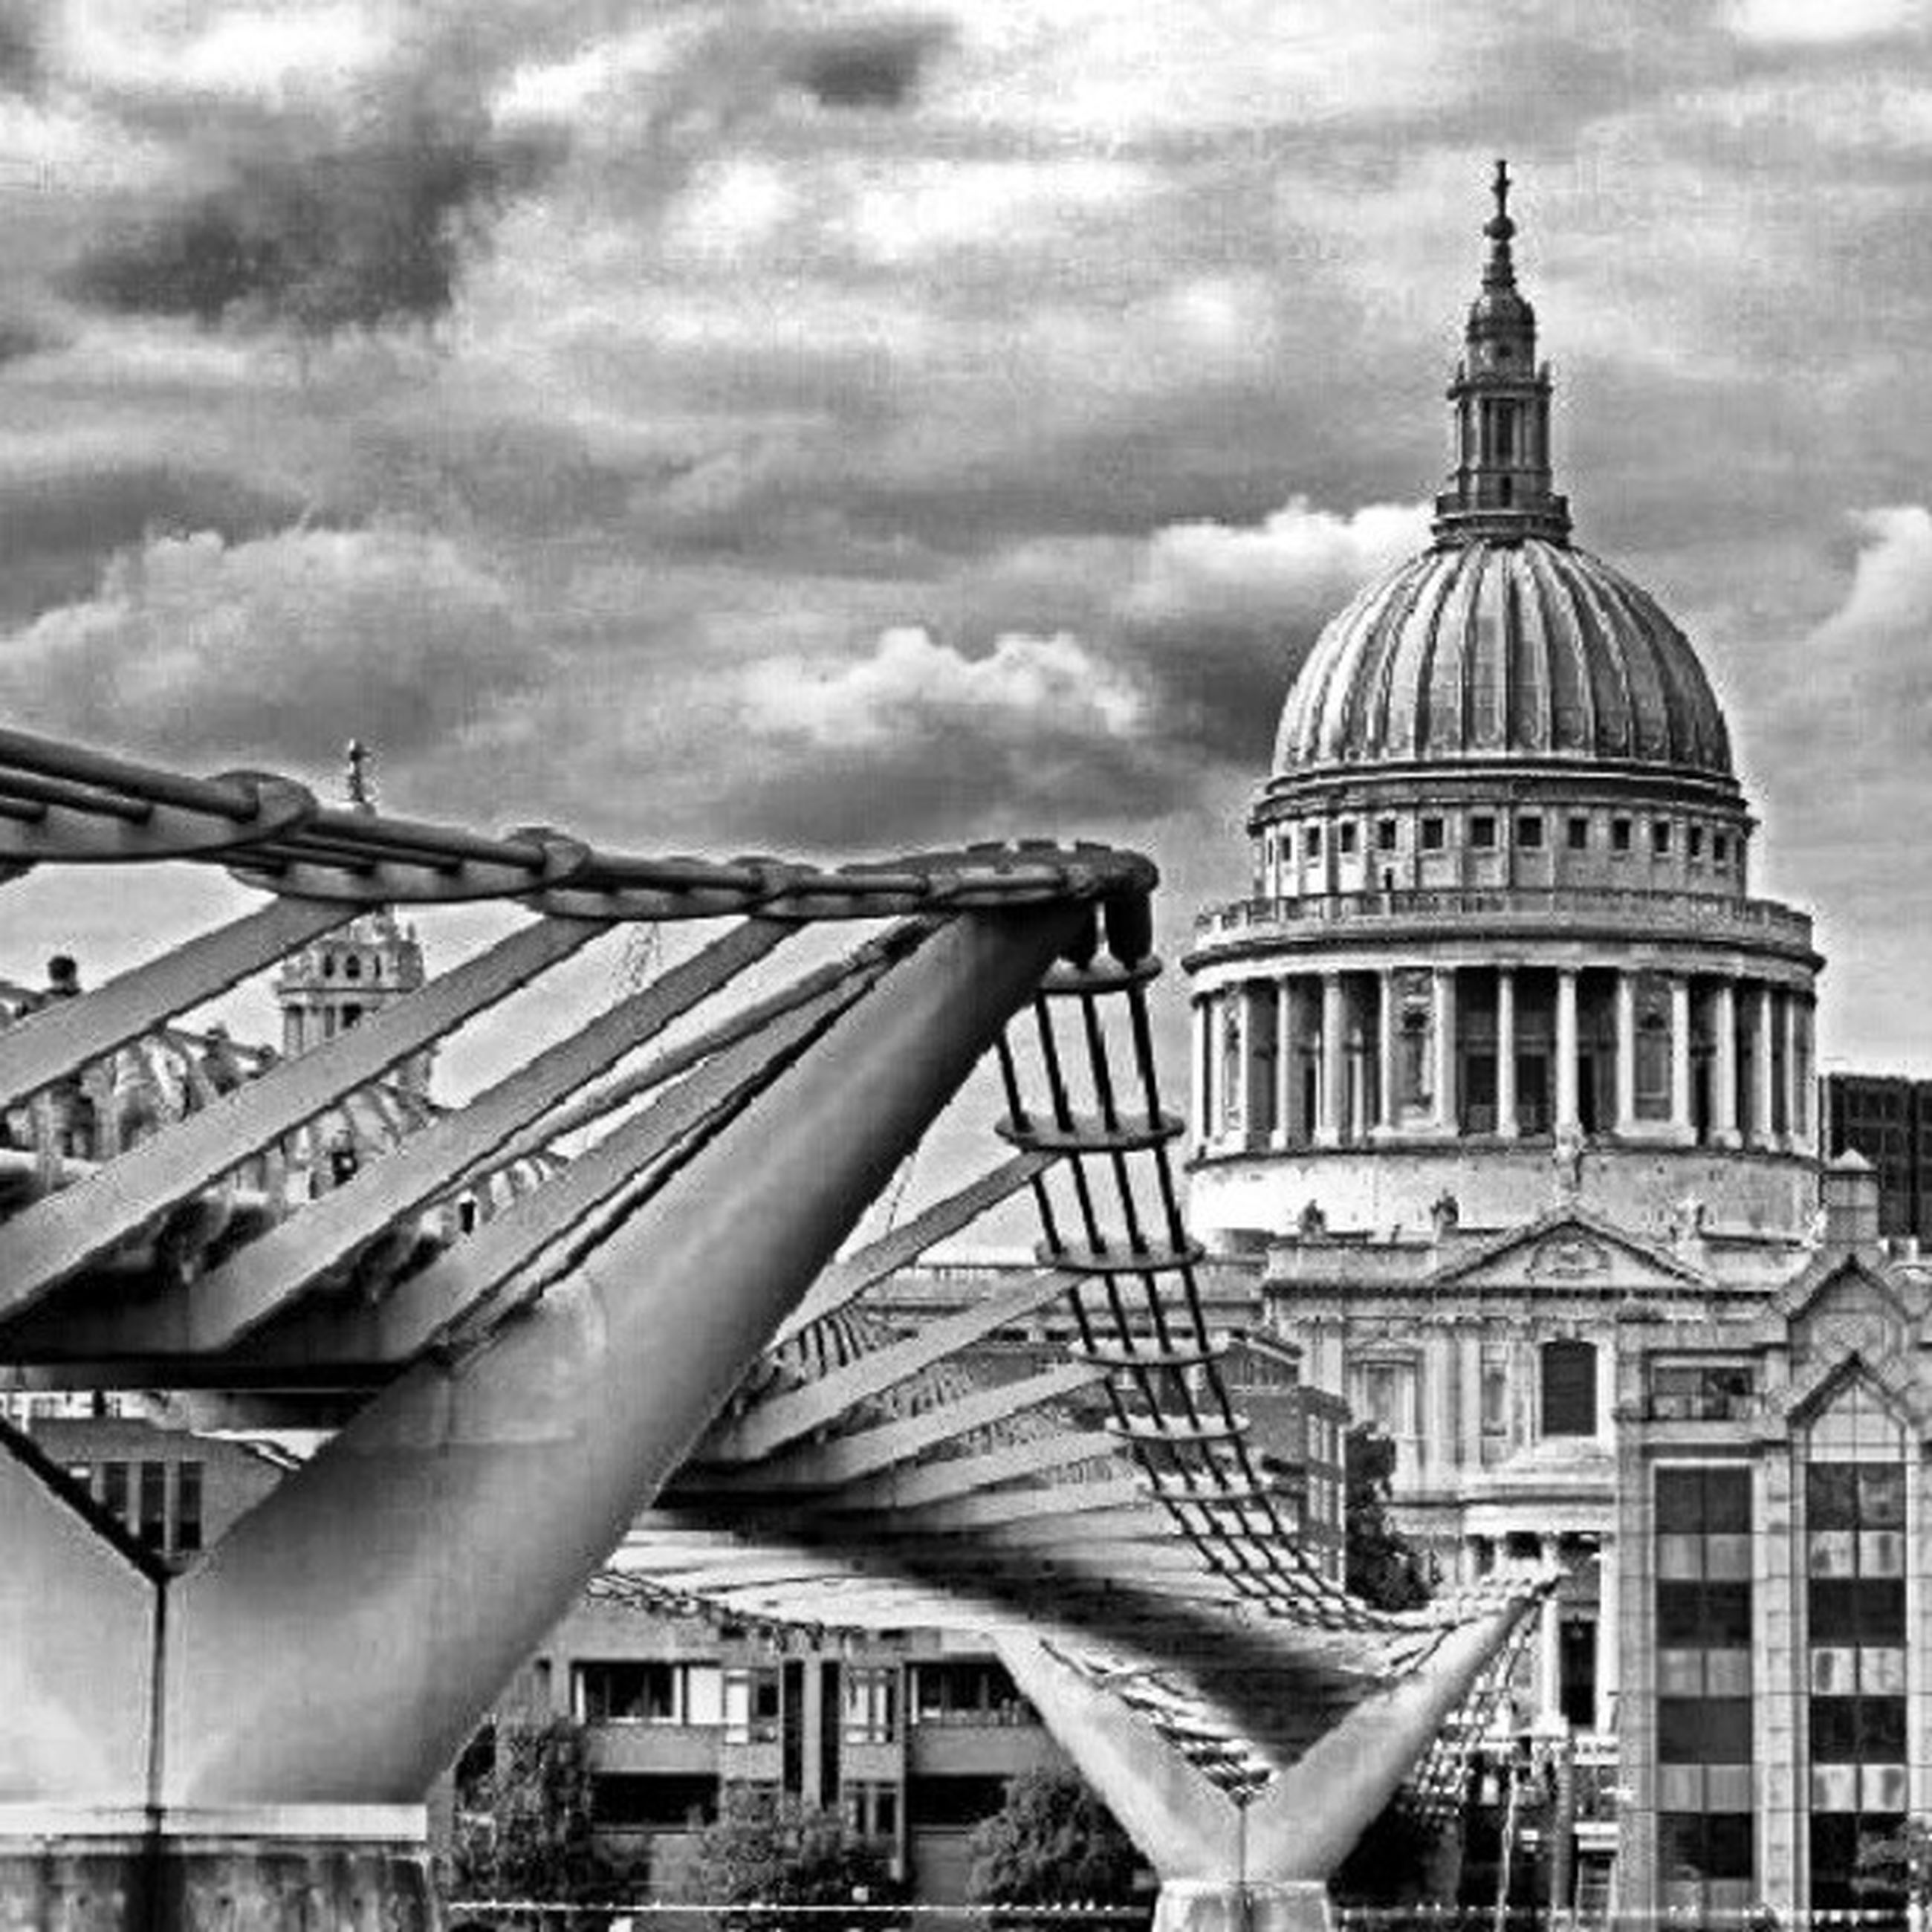 architecture, built structure, sky, building exterior, cloud - sky, dome, famous place, travel destinations, tourism, low angle view, travel, cloudy, international landmark, city, capital cities, cloud, day, outdoors, incidental people, architectural feature